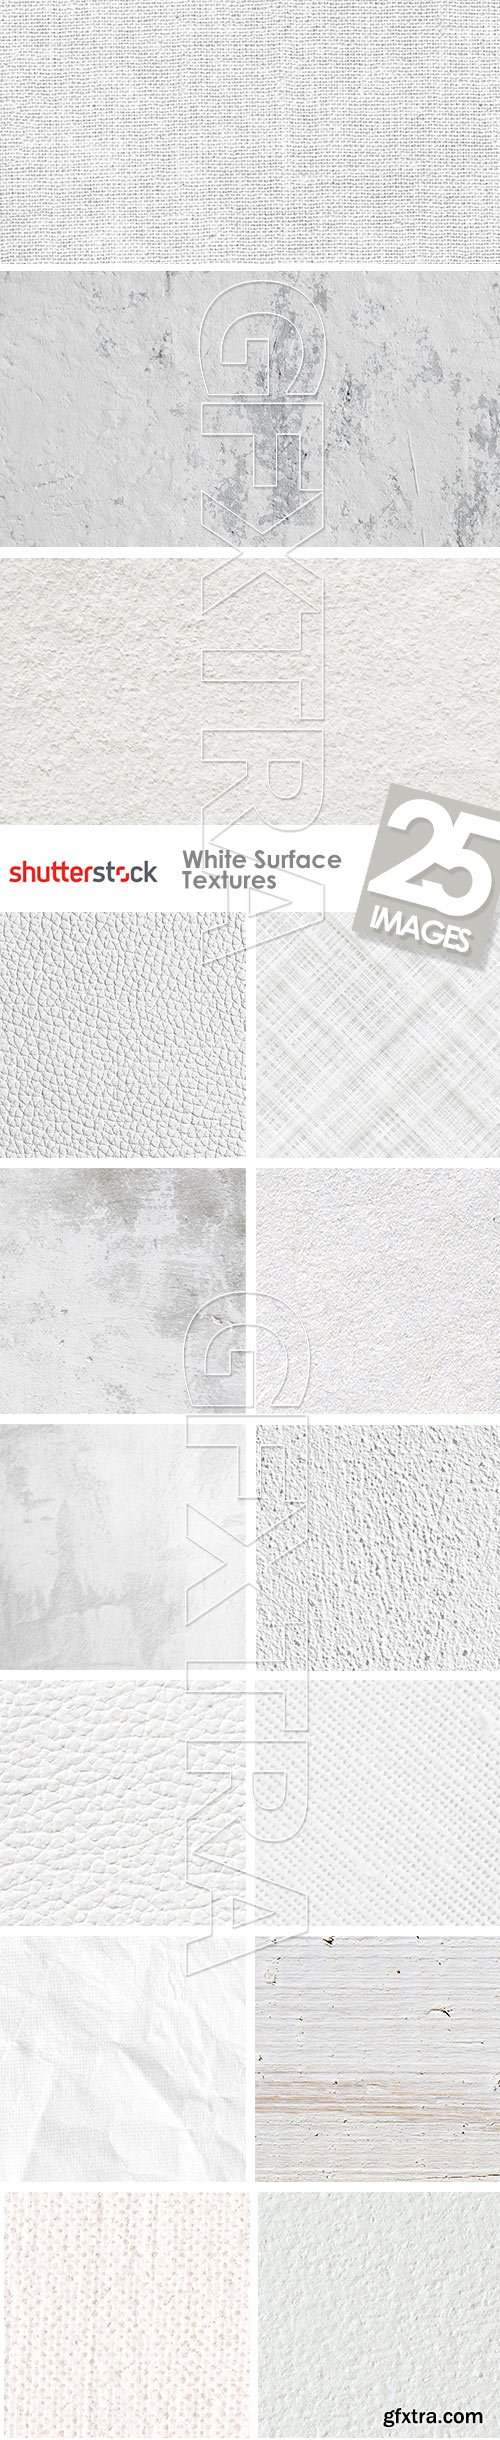 White Surface Textures 25xJPG